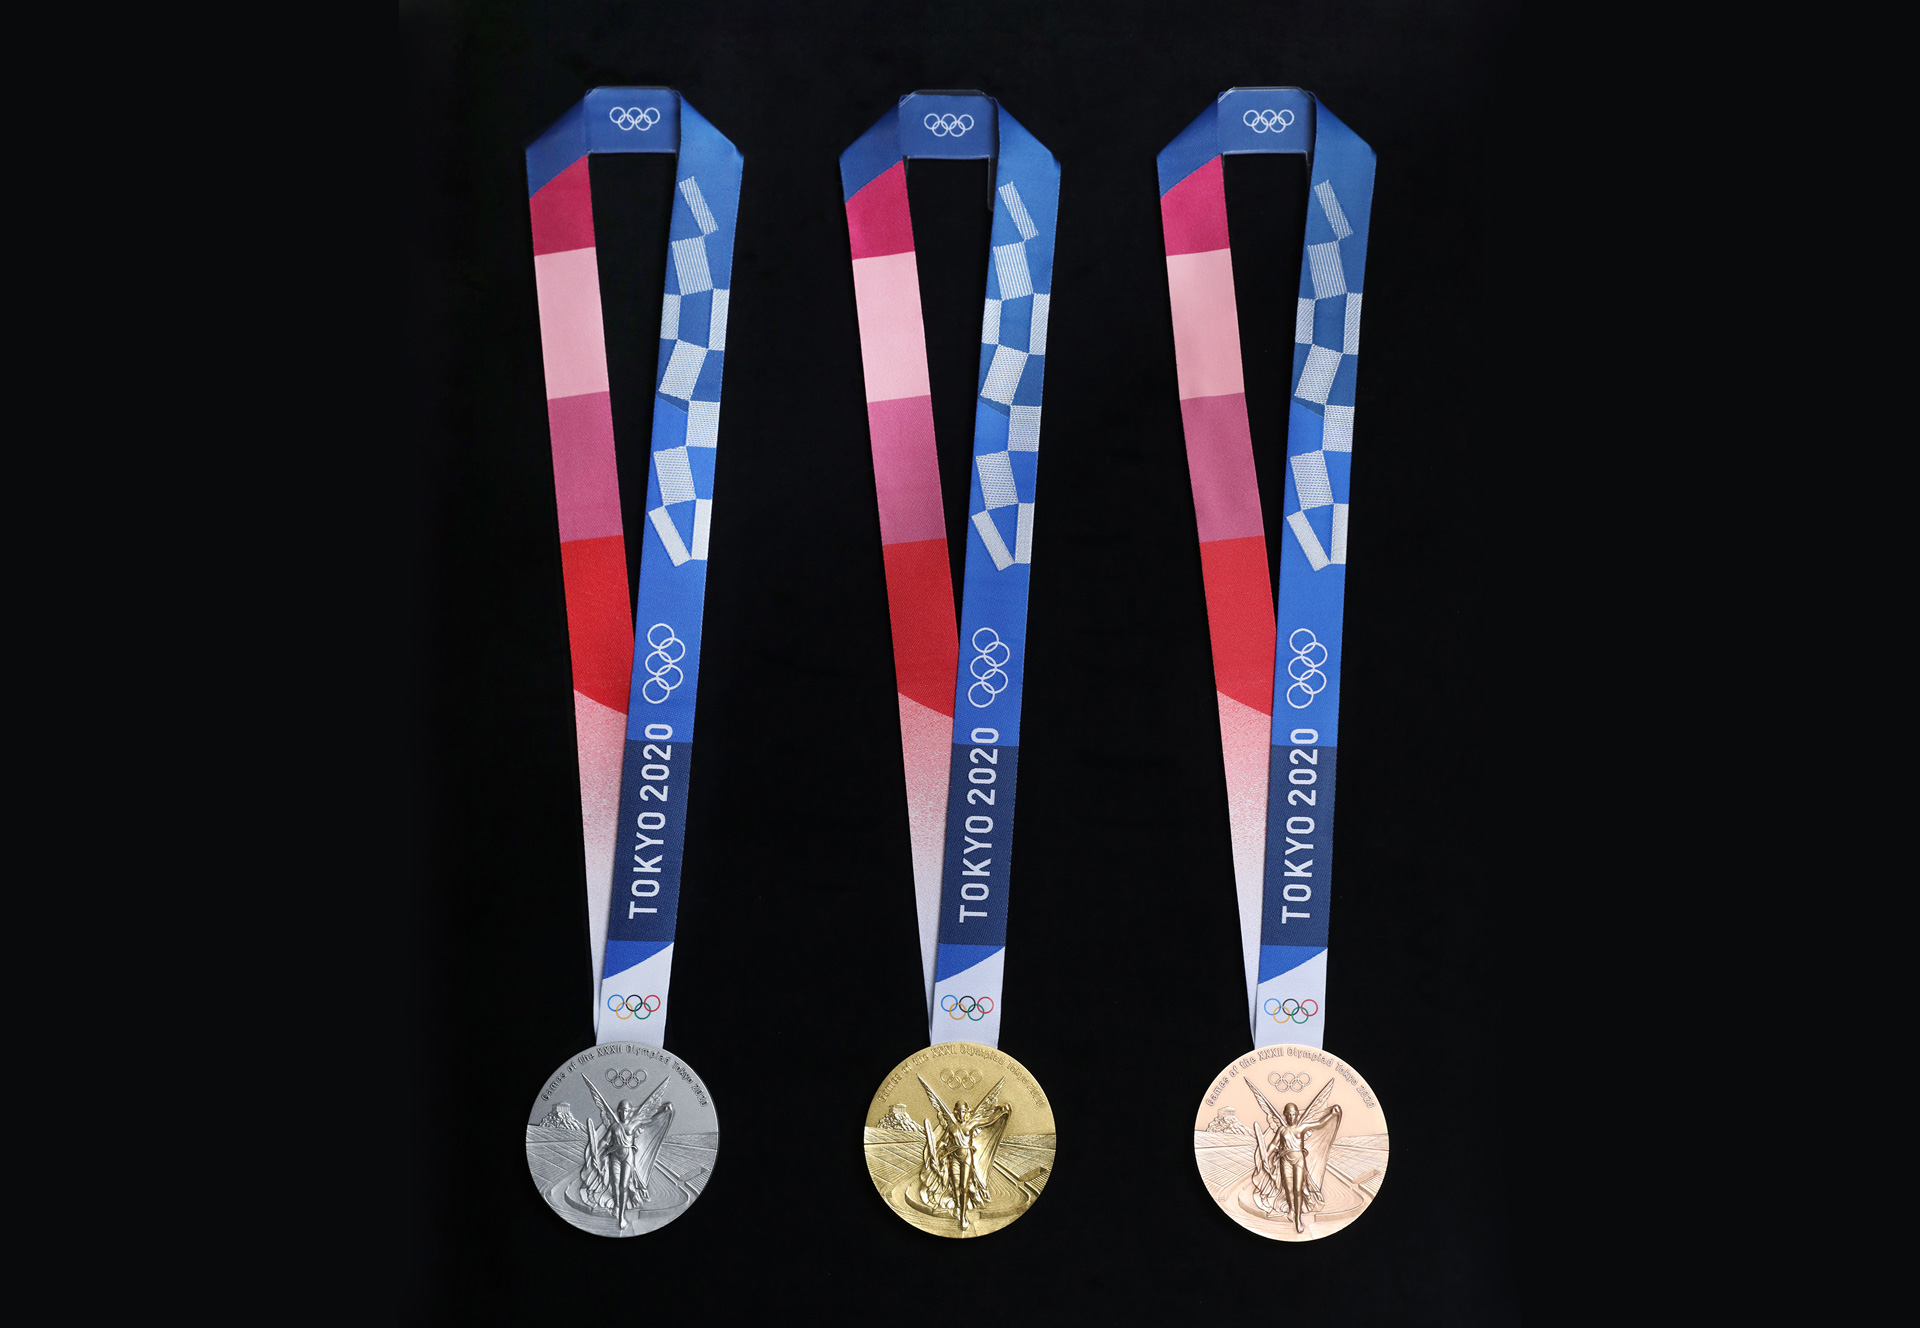 Tokyo 2020 Olympic Medals | Olympic Medal | Tokyo 2020 | STIRworld